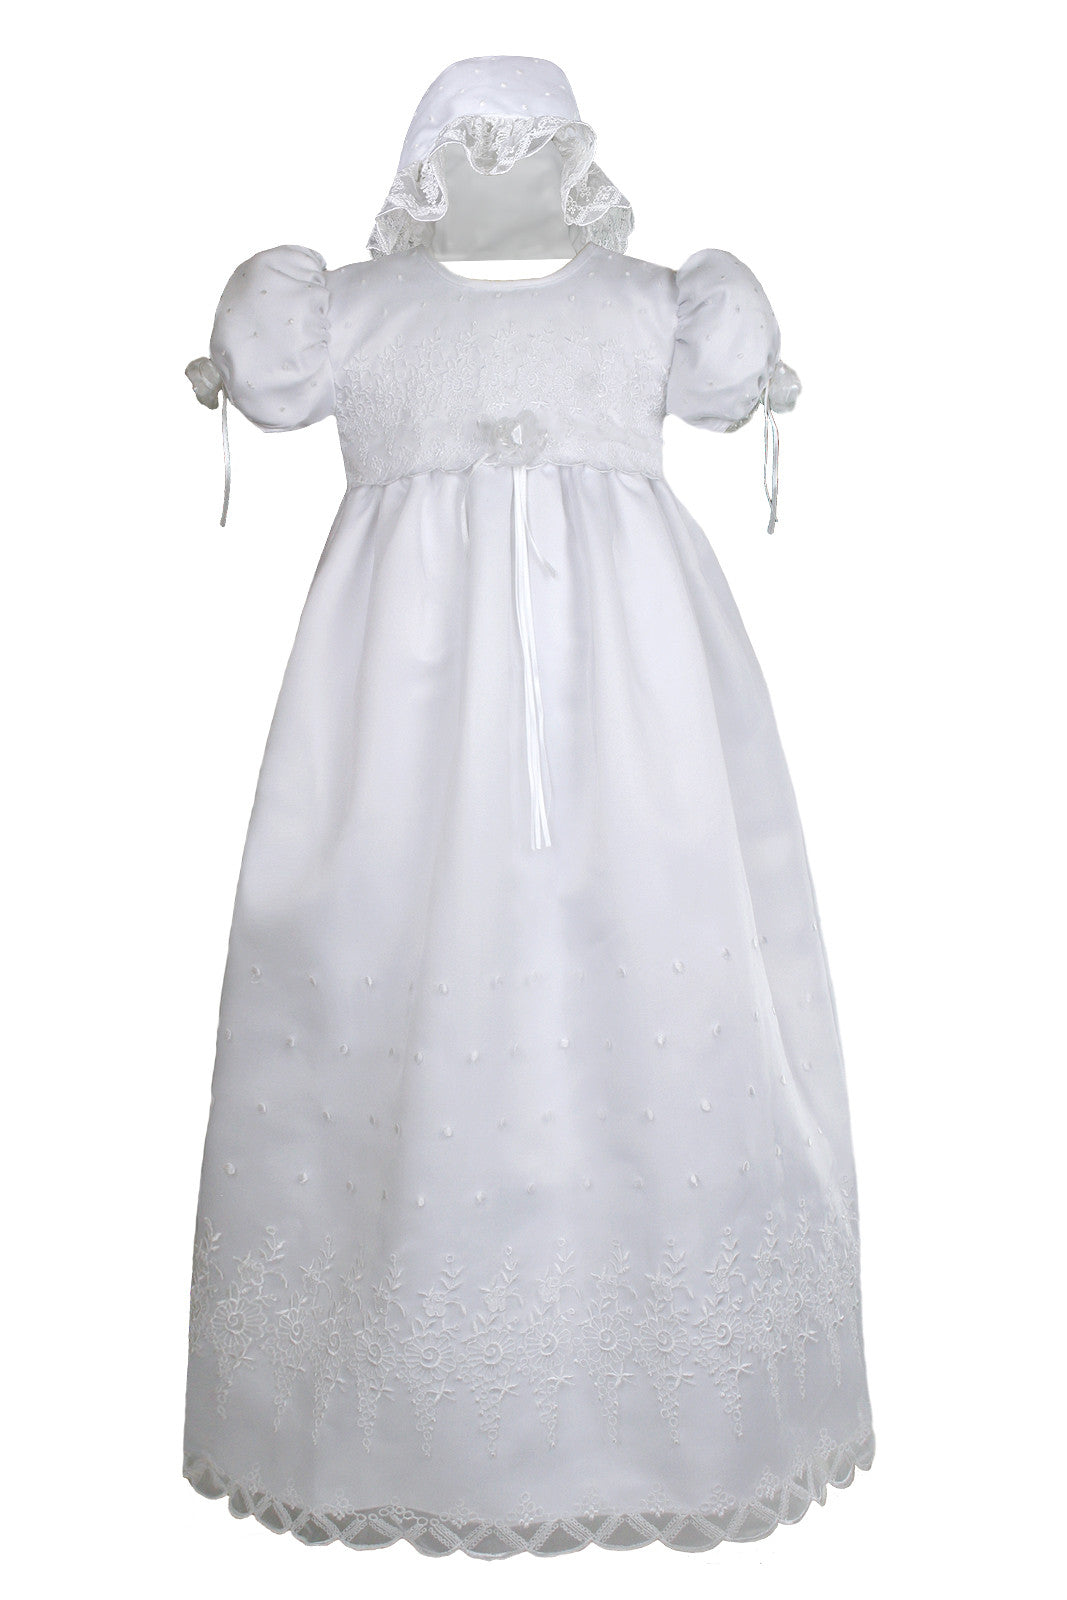 Flower Baby Girls White Organza 2PC Dress Long Gown Christening Baptism Bonnet